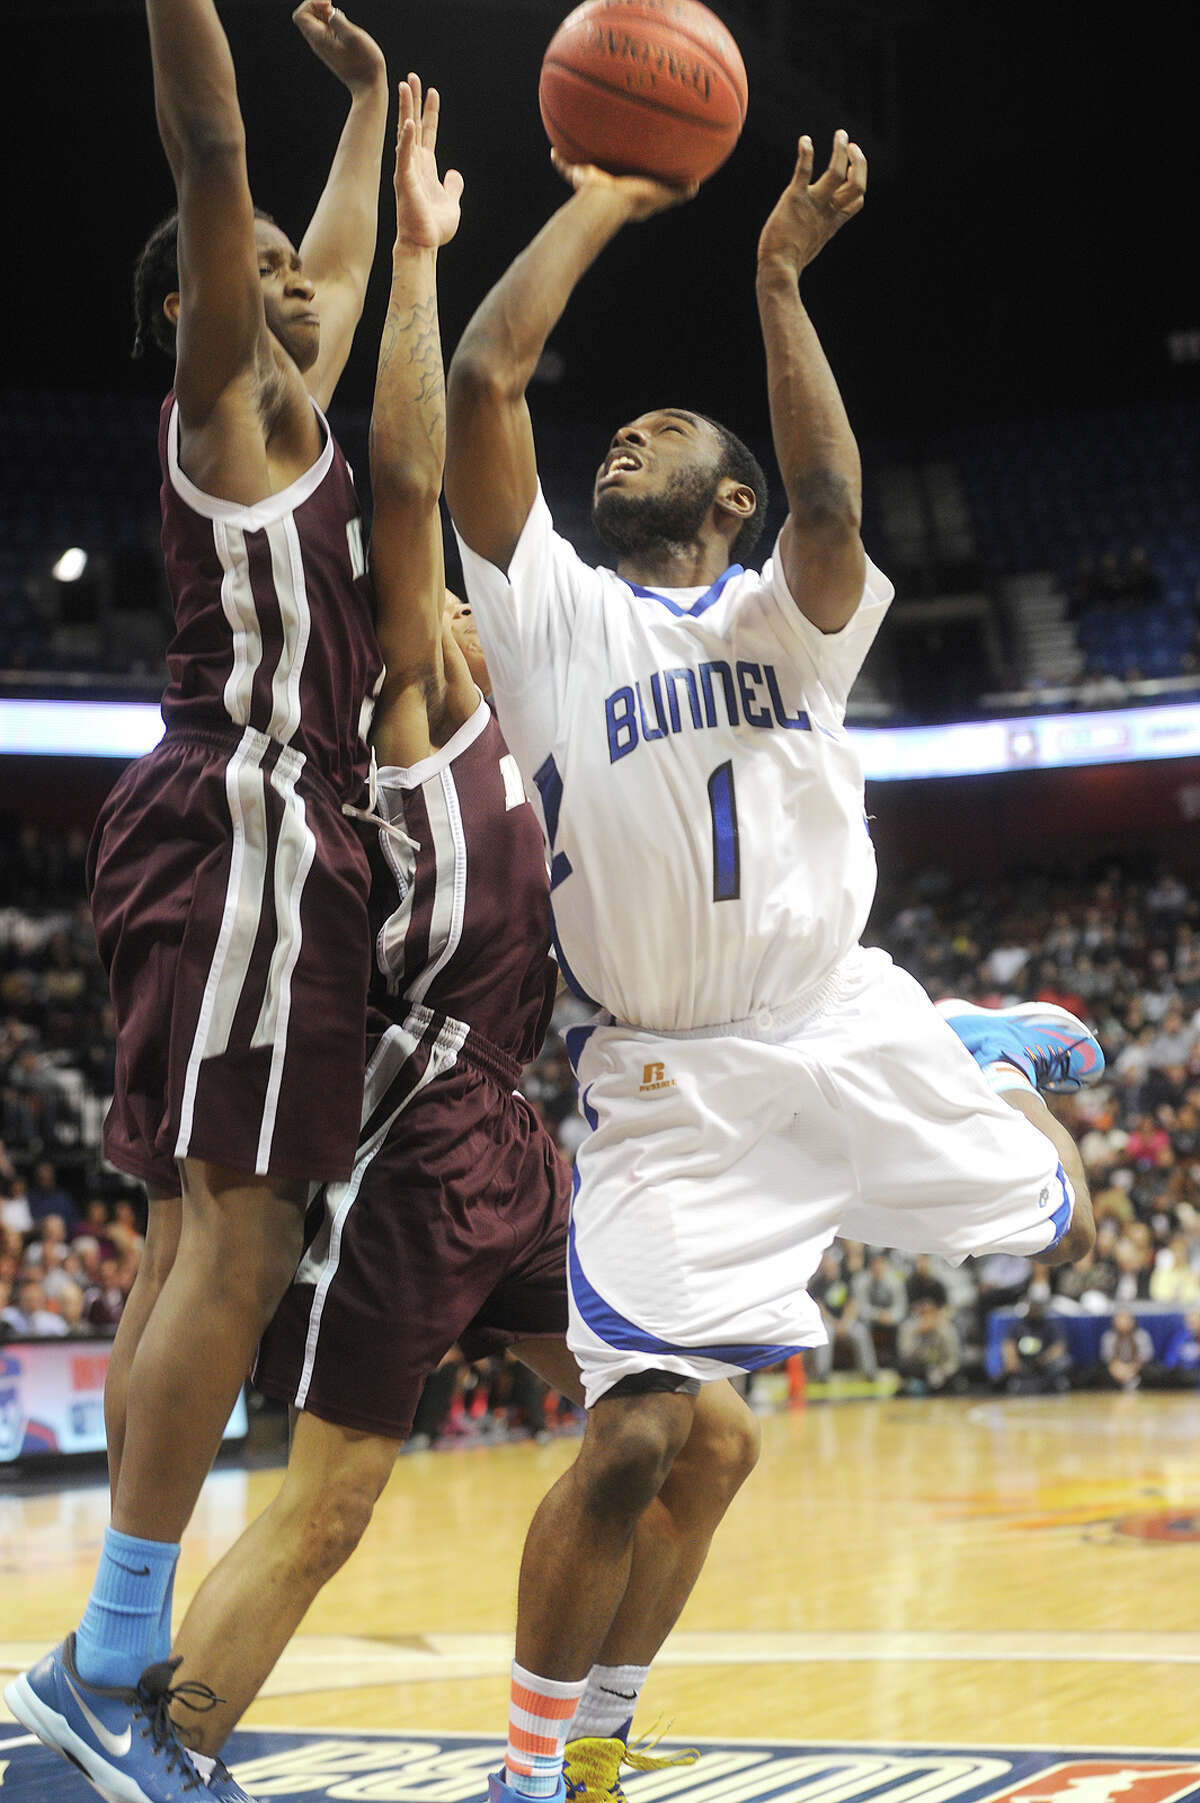 Bunnell: Senior Class L All-State guard Ryan Pittmanaveraged 16.3 points, 8.4 assists, 5.4 rebounds and 3.9 steals for the Class L and SWC champion Bulldogs.